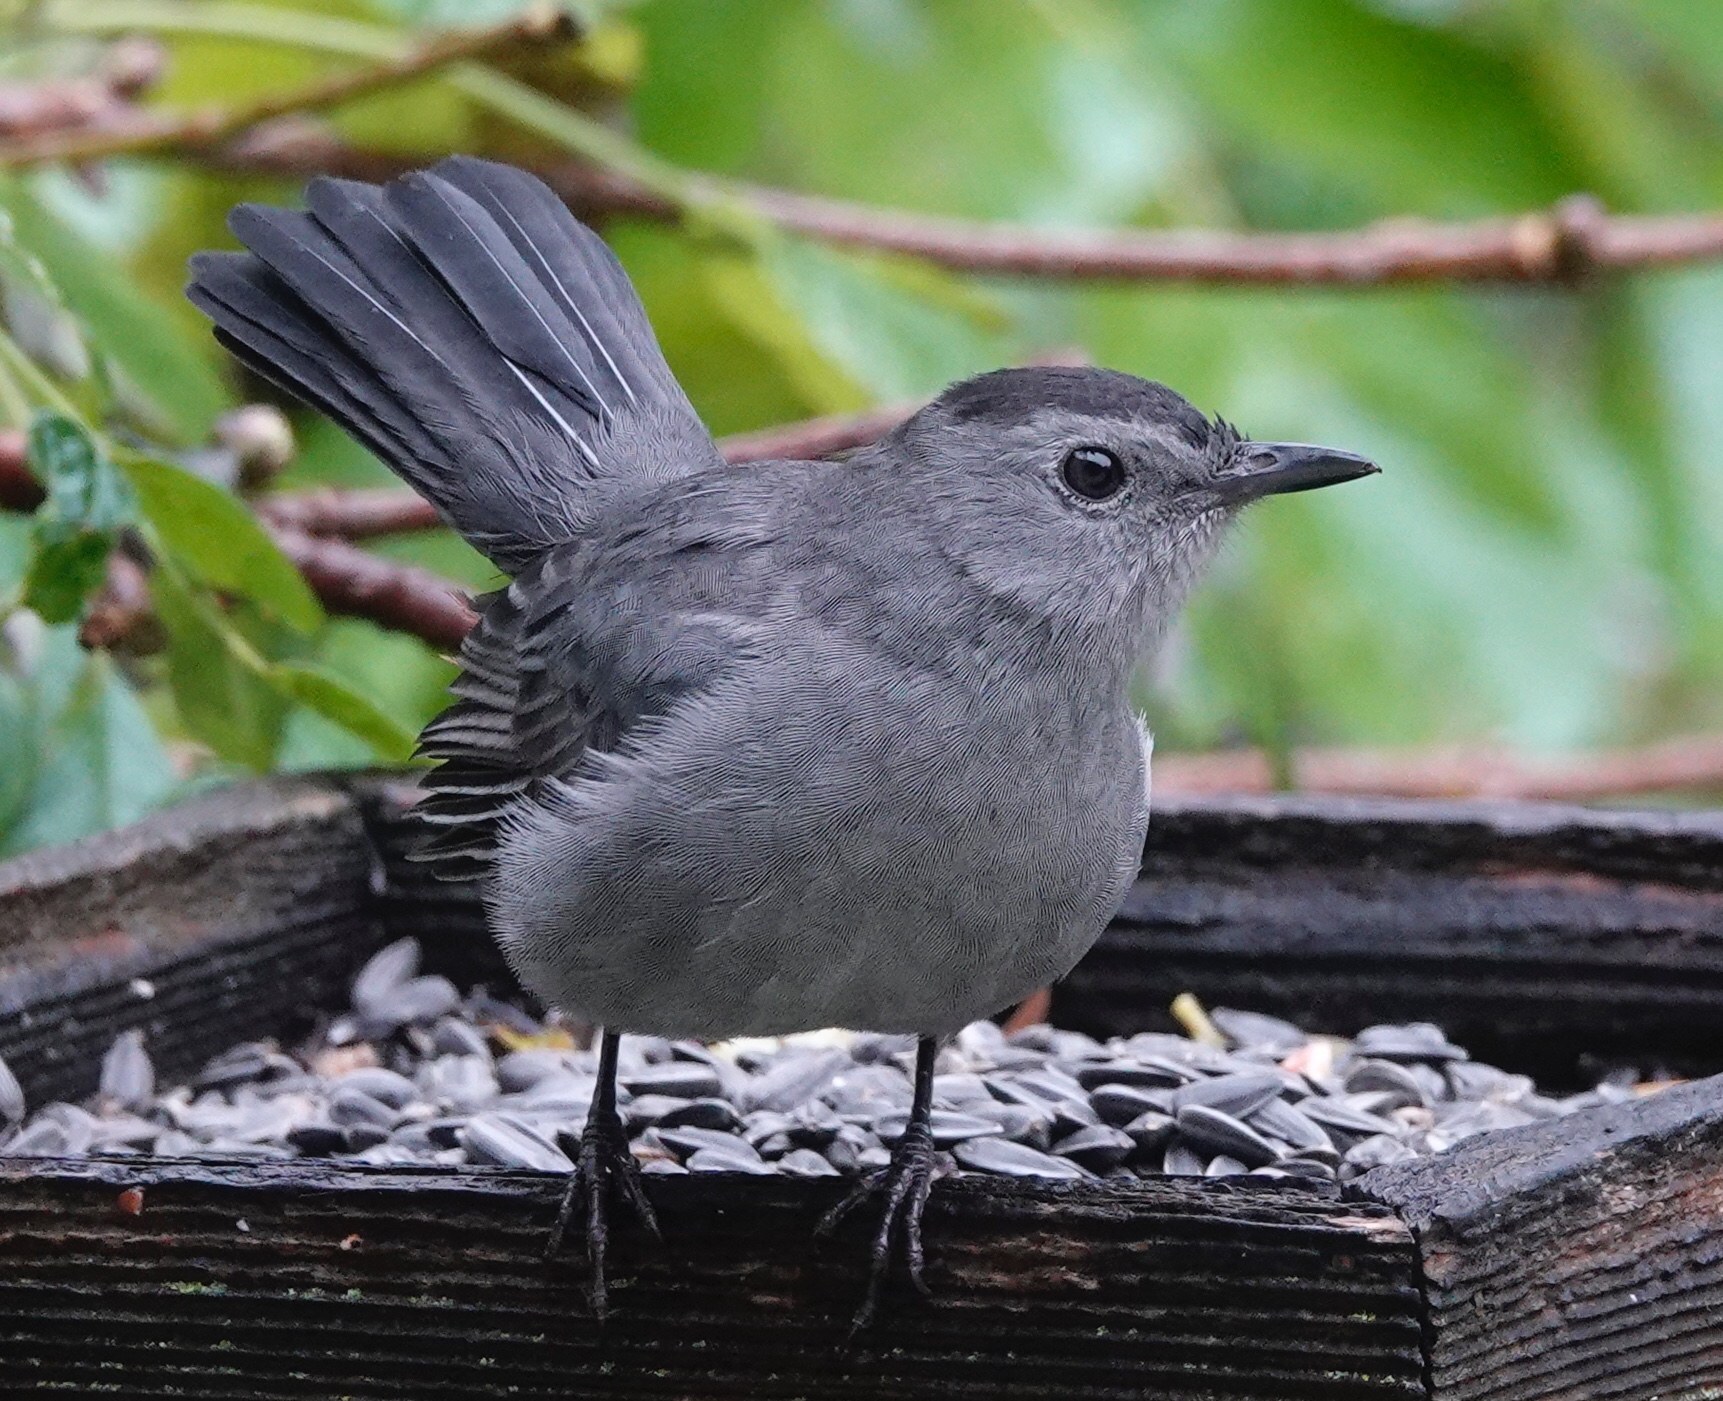 The catbird is having a good day. Therefore, so am I.